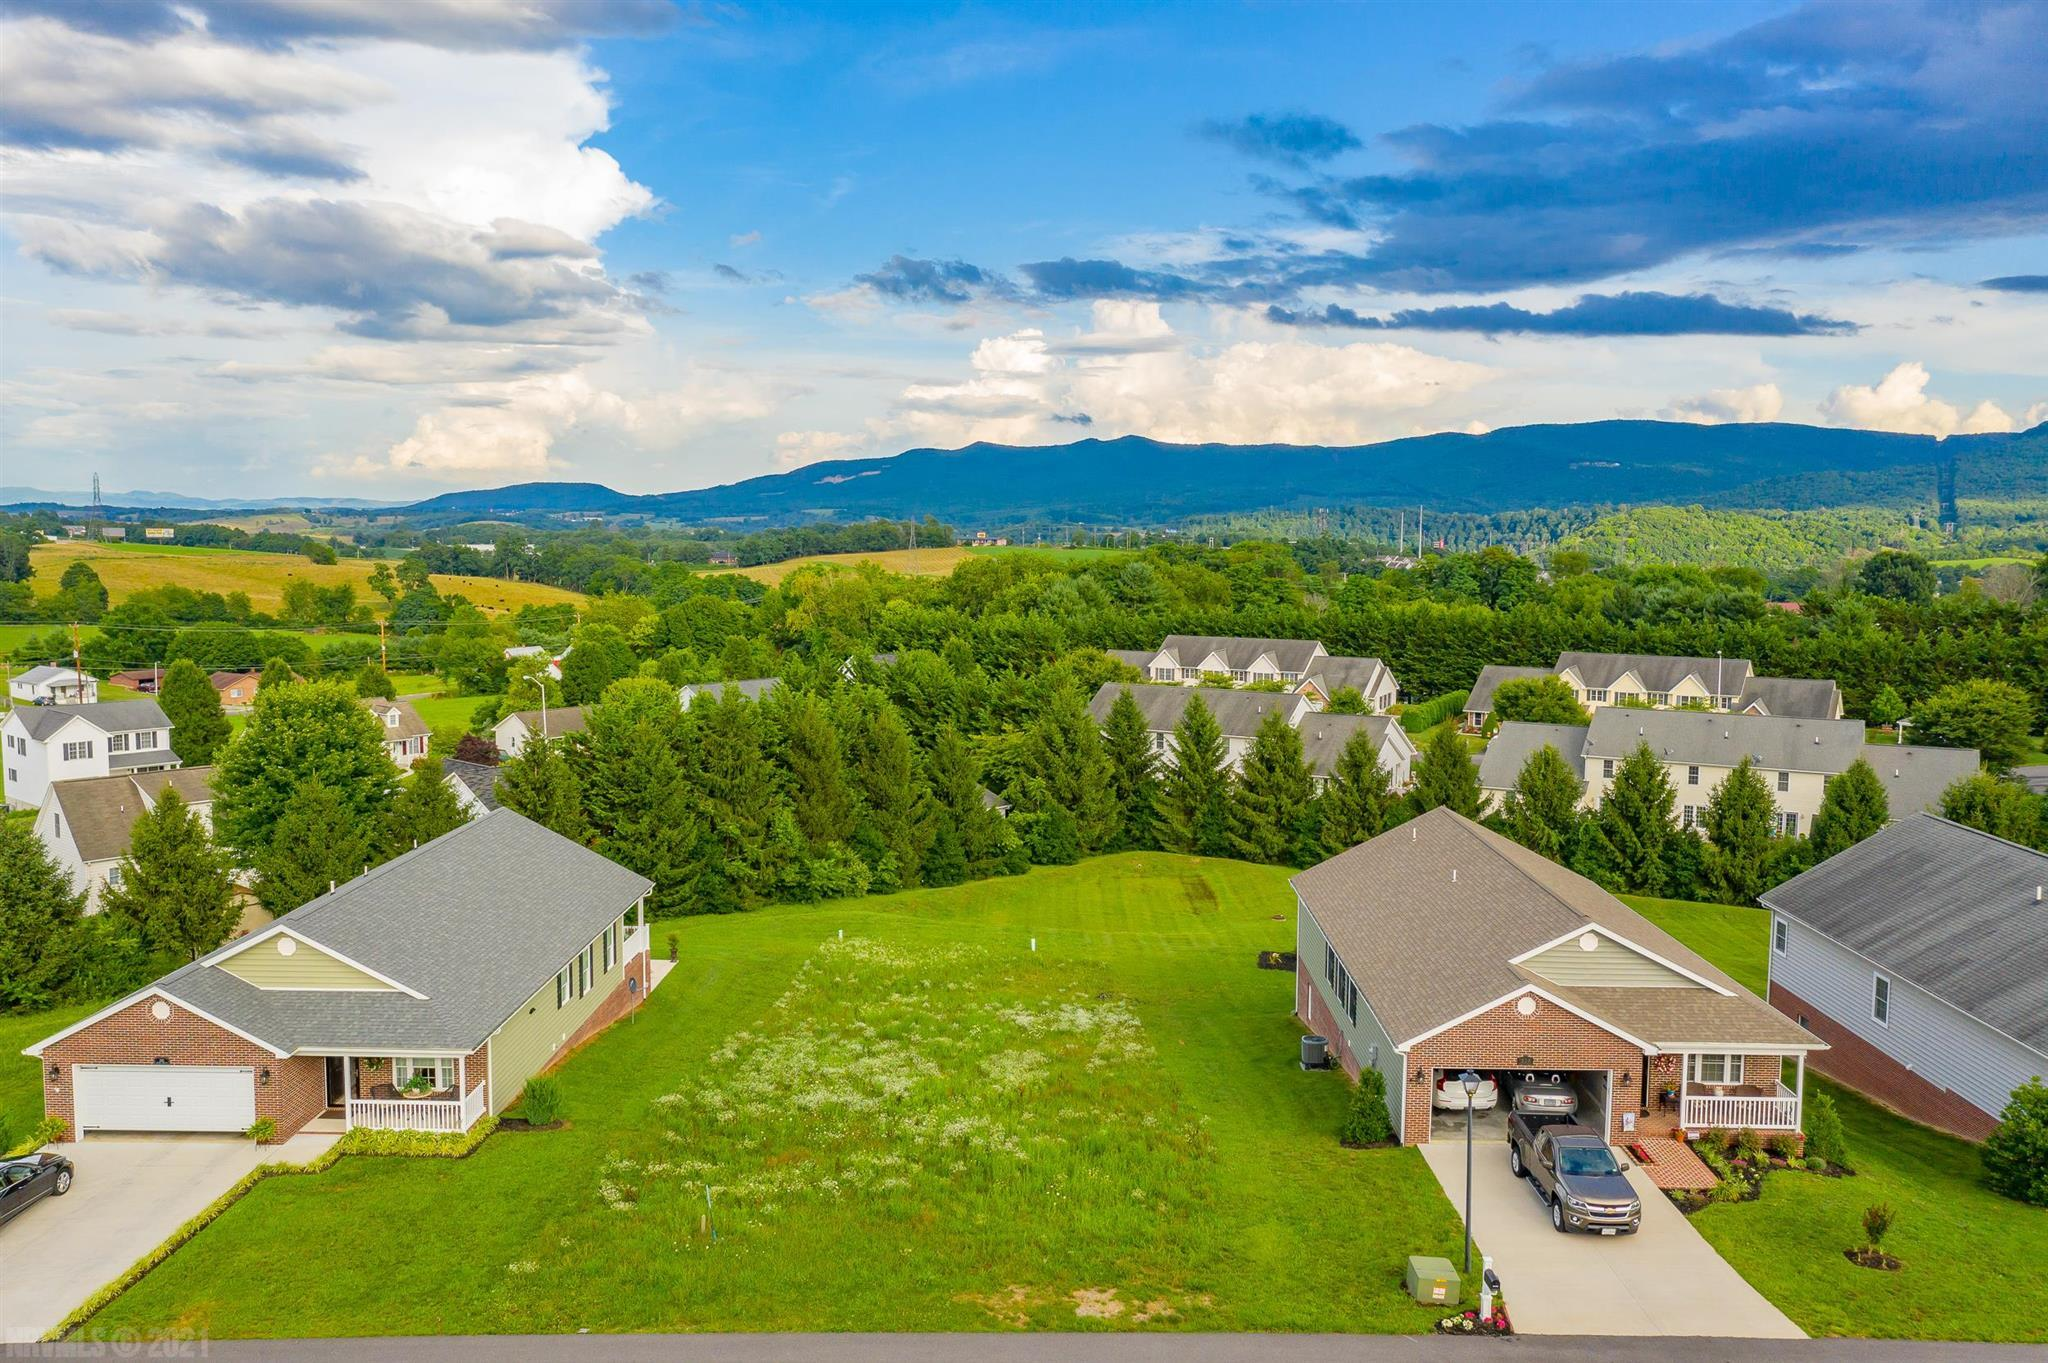 Pristine building lot in the desired College Park neighborhood of Wytheville. This is the first time EVER that lots in this premier subdivision have been offered to the open market. Featuring access to public utilities, close proximity to downtown Wytheville, and all this with potential for gorgeous mountain views. Don't let this opportunity pass by, call to set up your showing today!